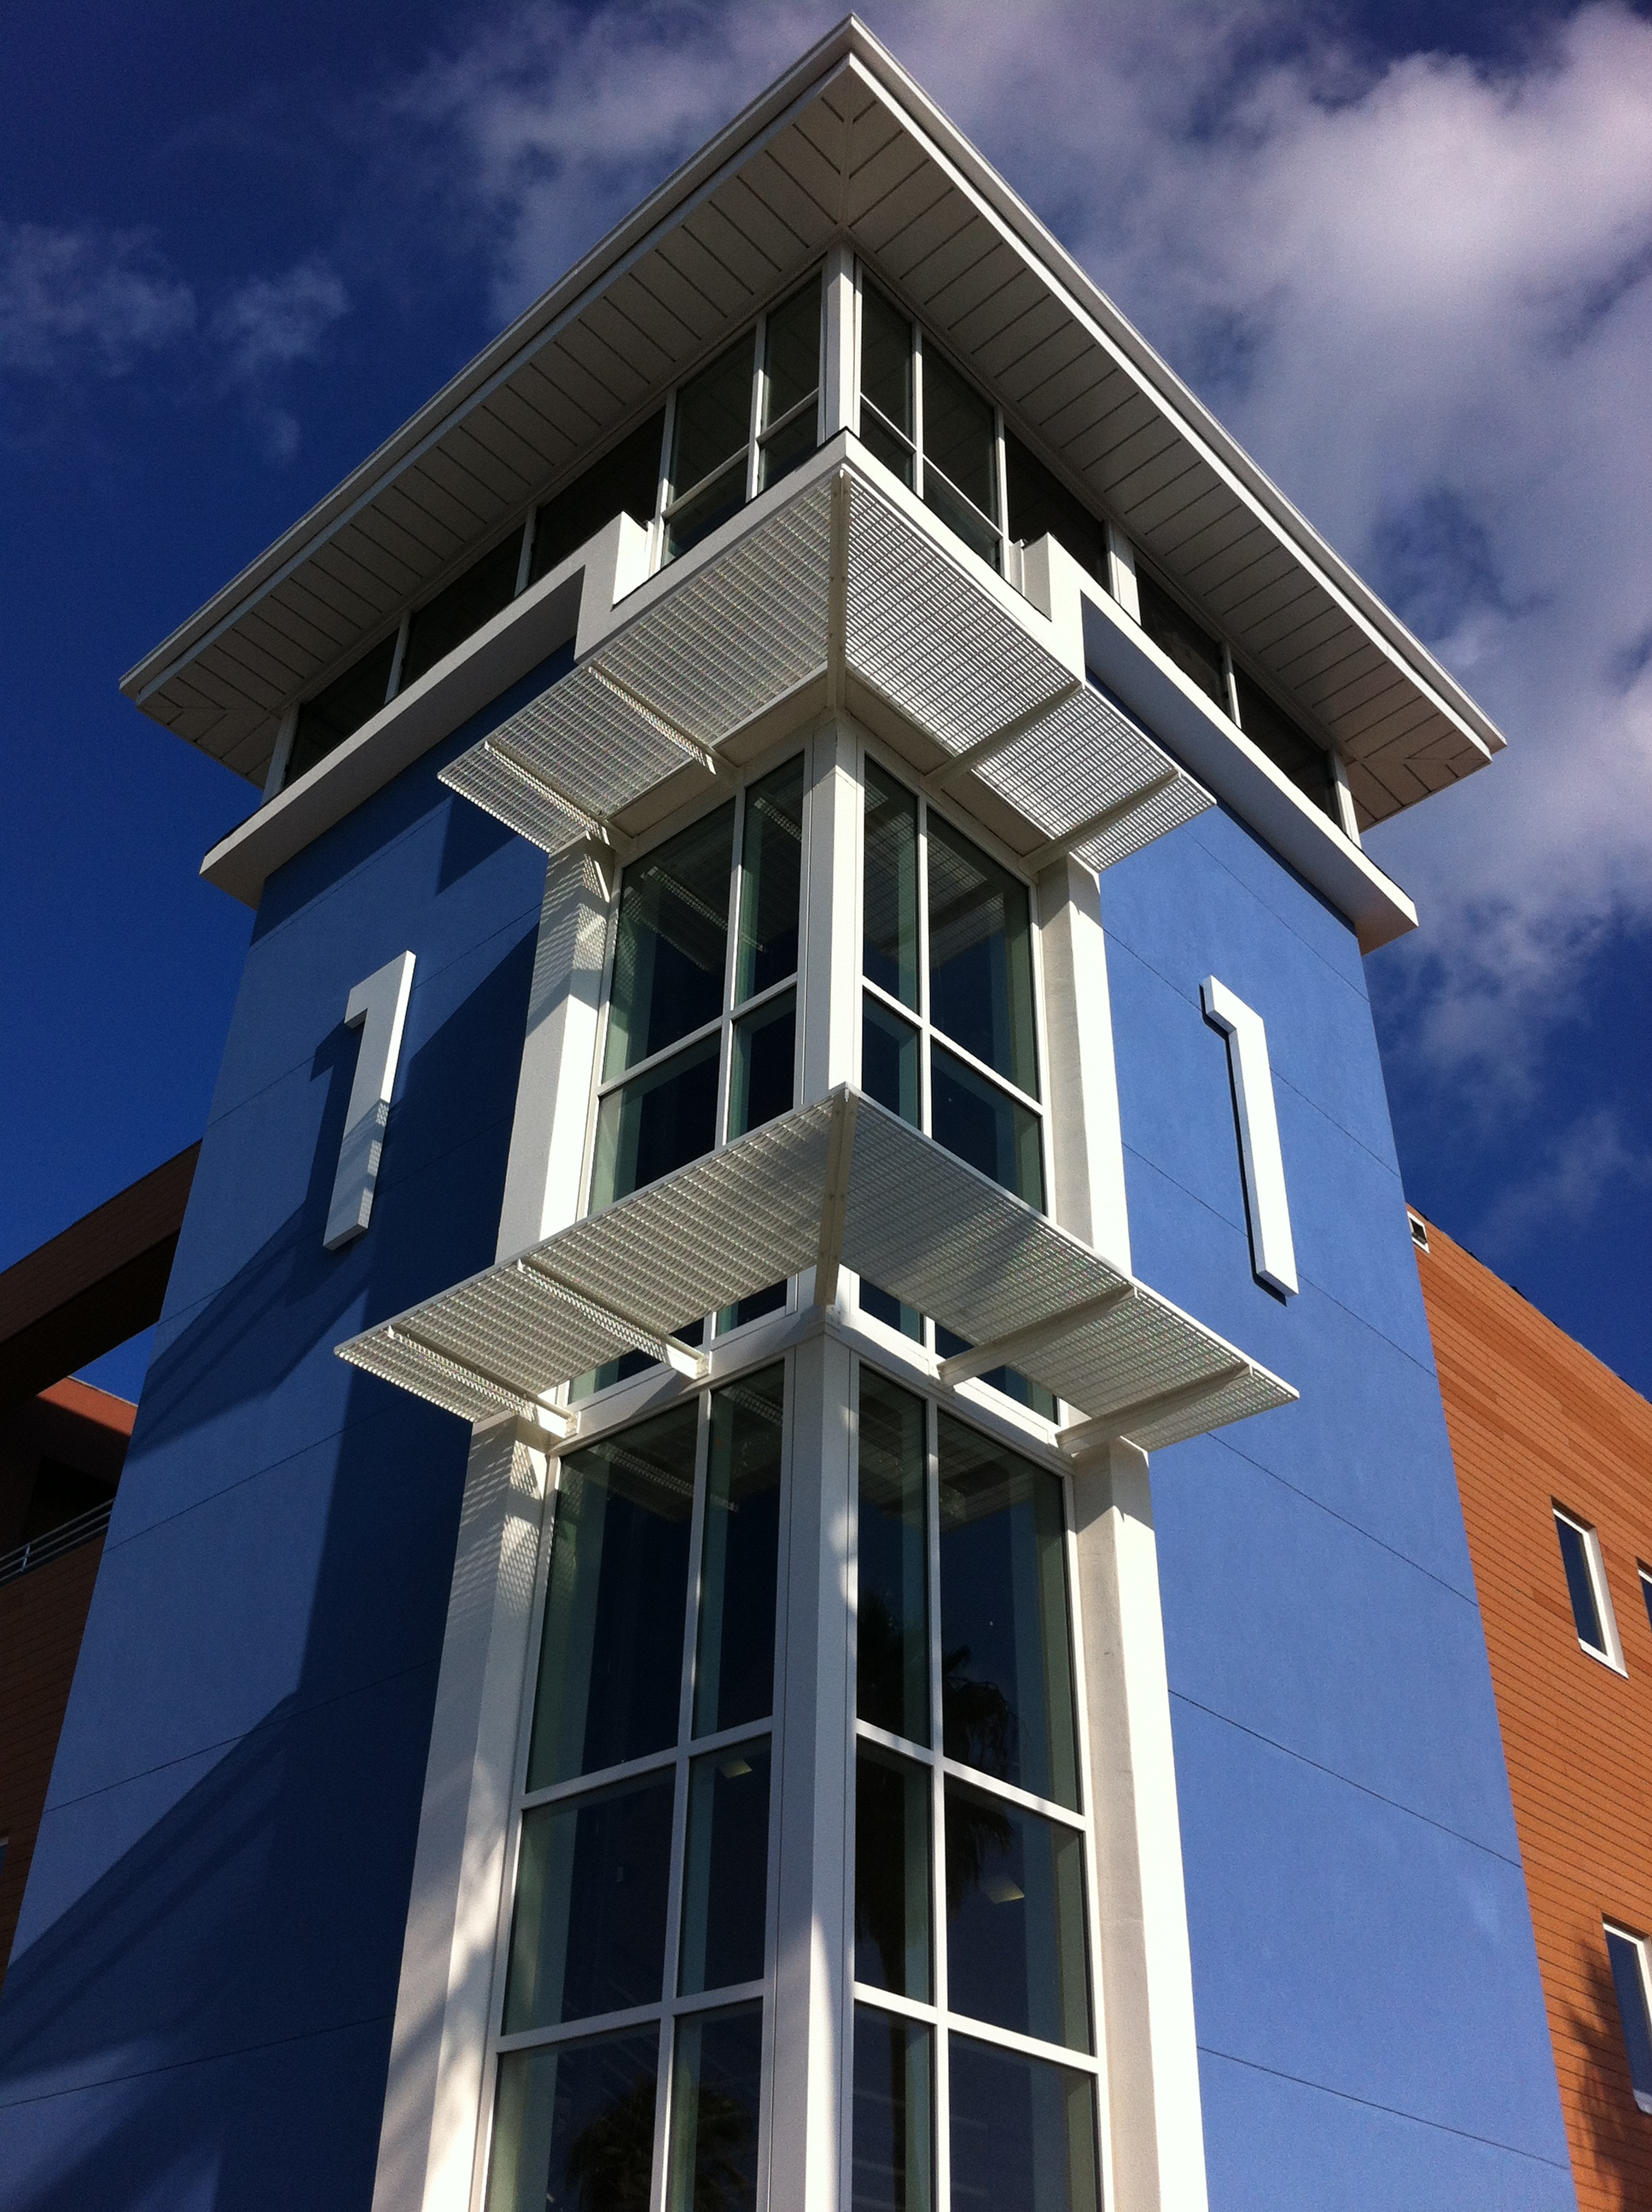 Construction trends design on fire for Stair tower